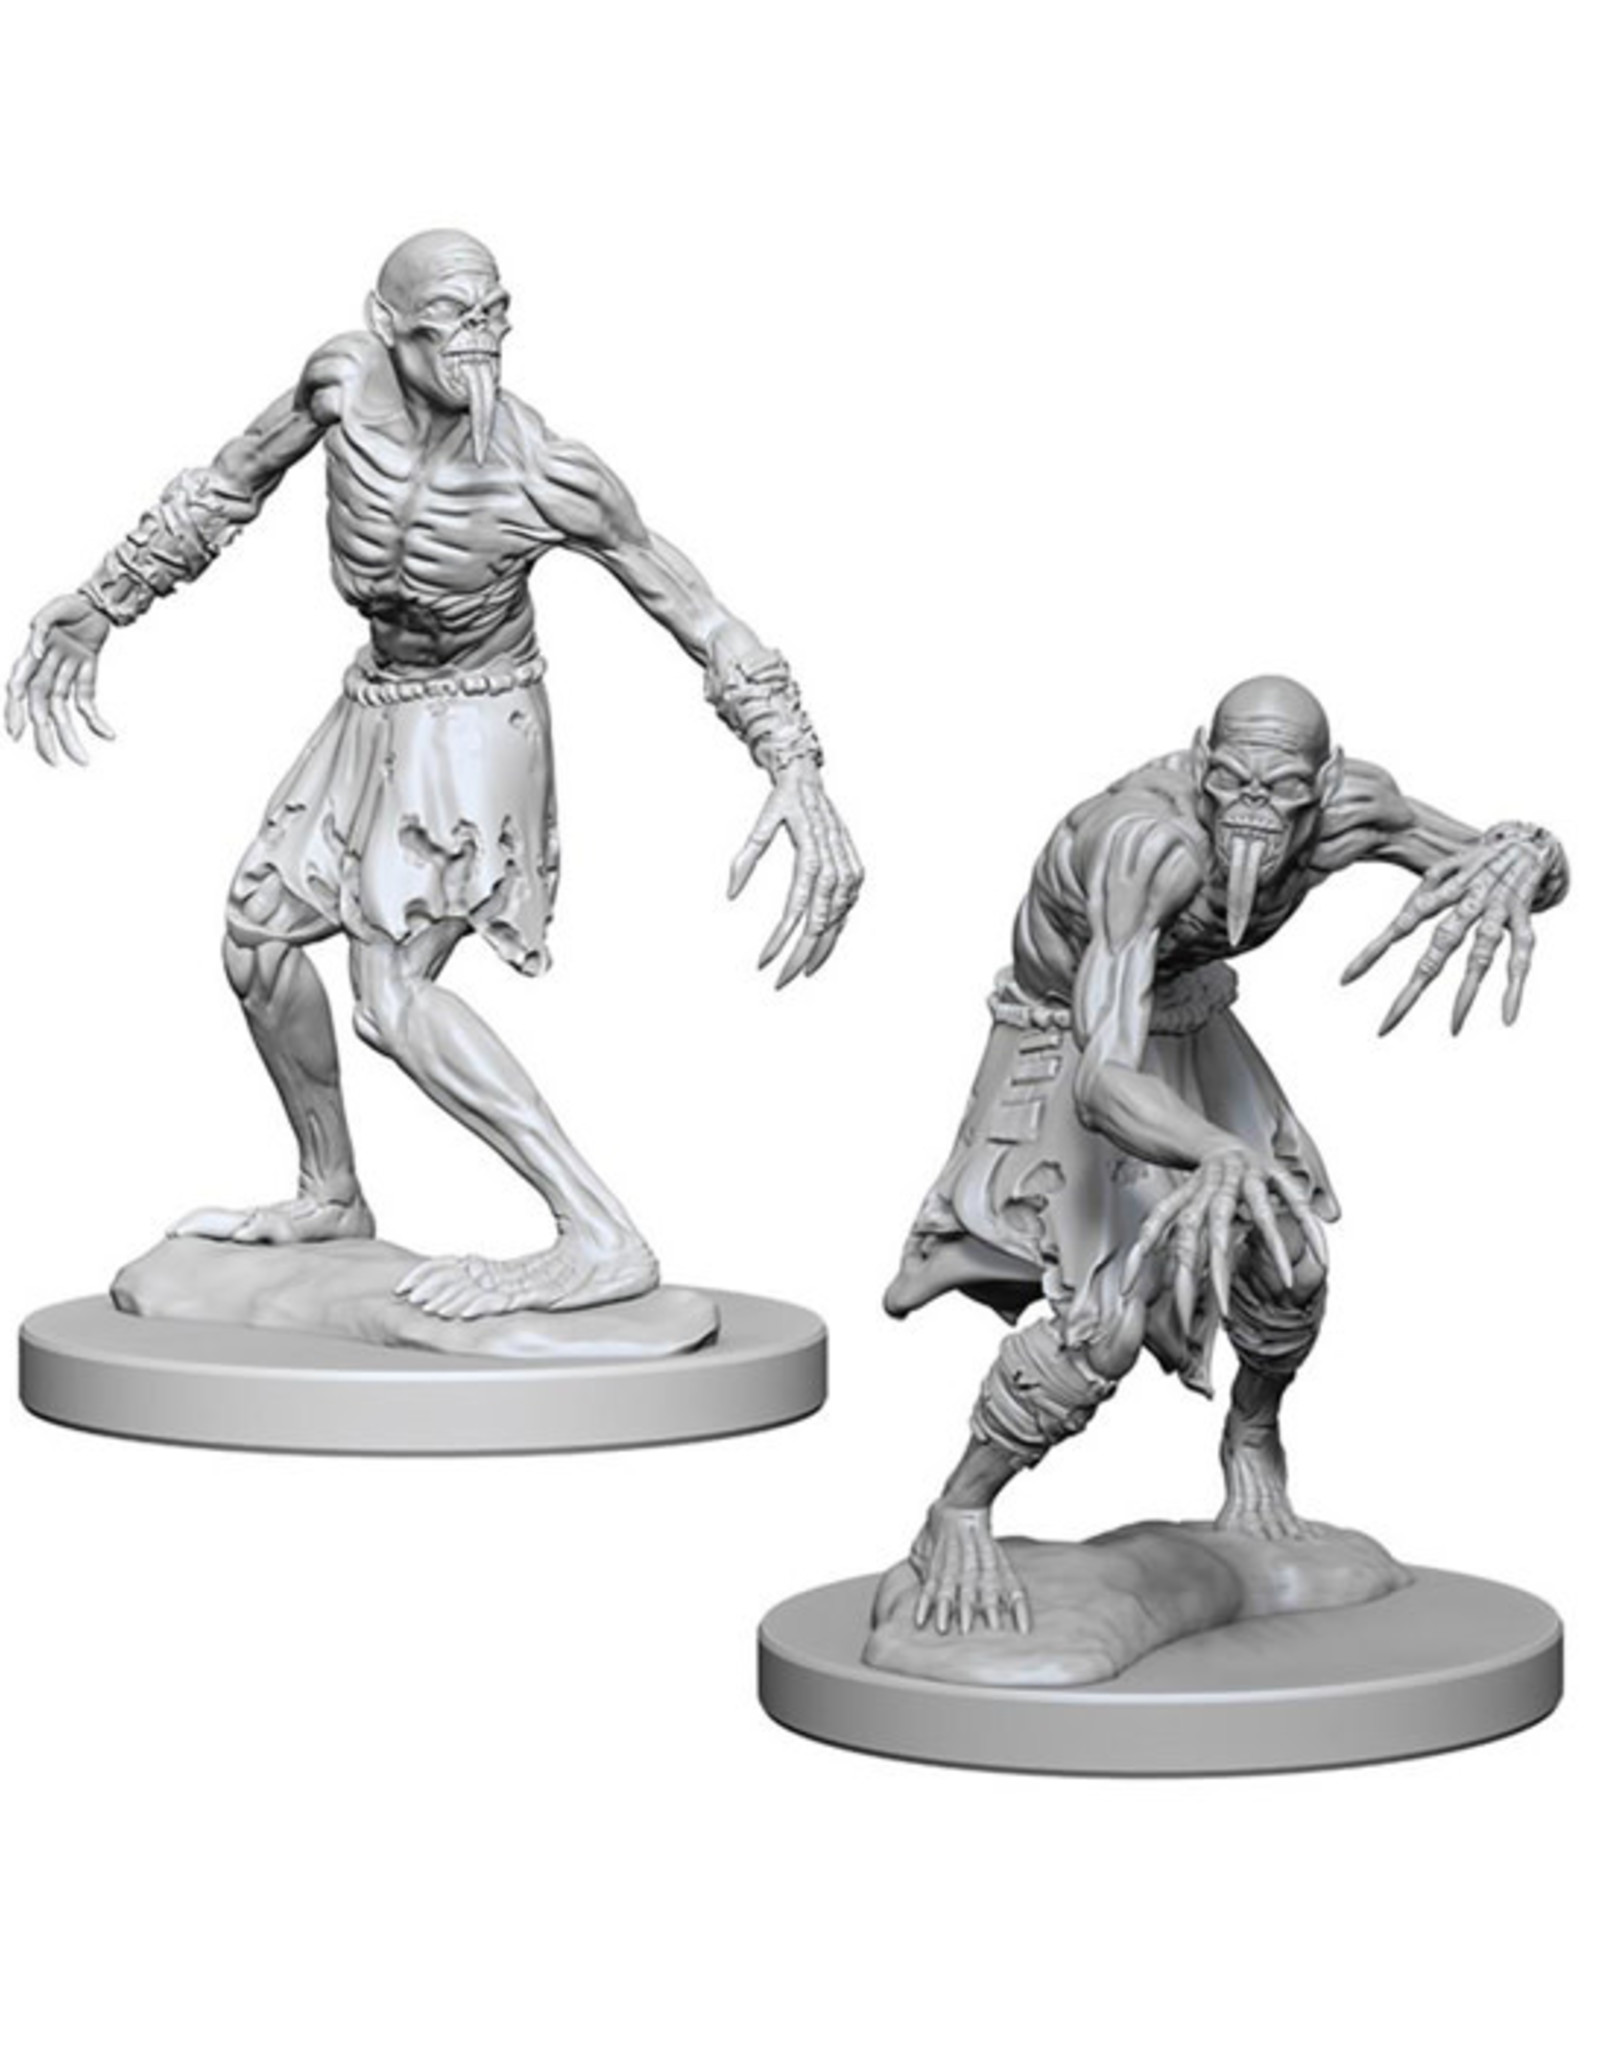 Dungeons & Dragons Dungeons & Dragons: Nolzur's - Ghouls